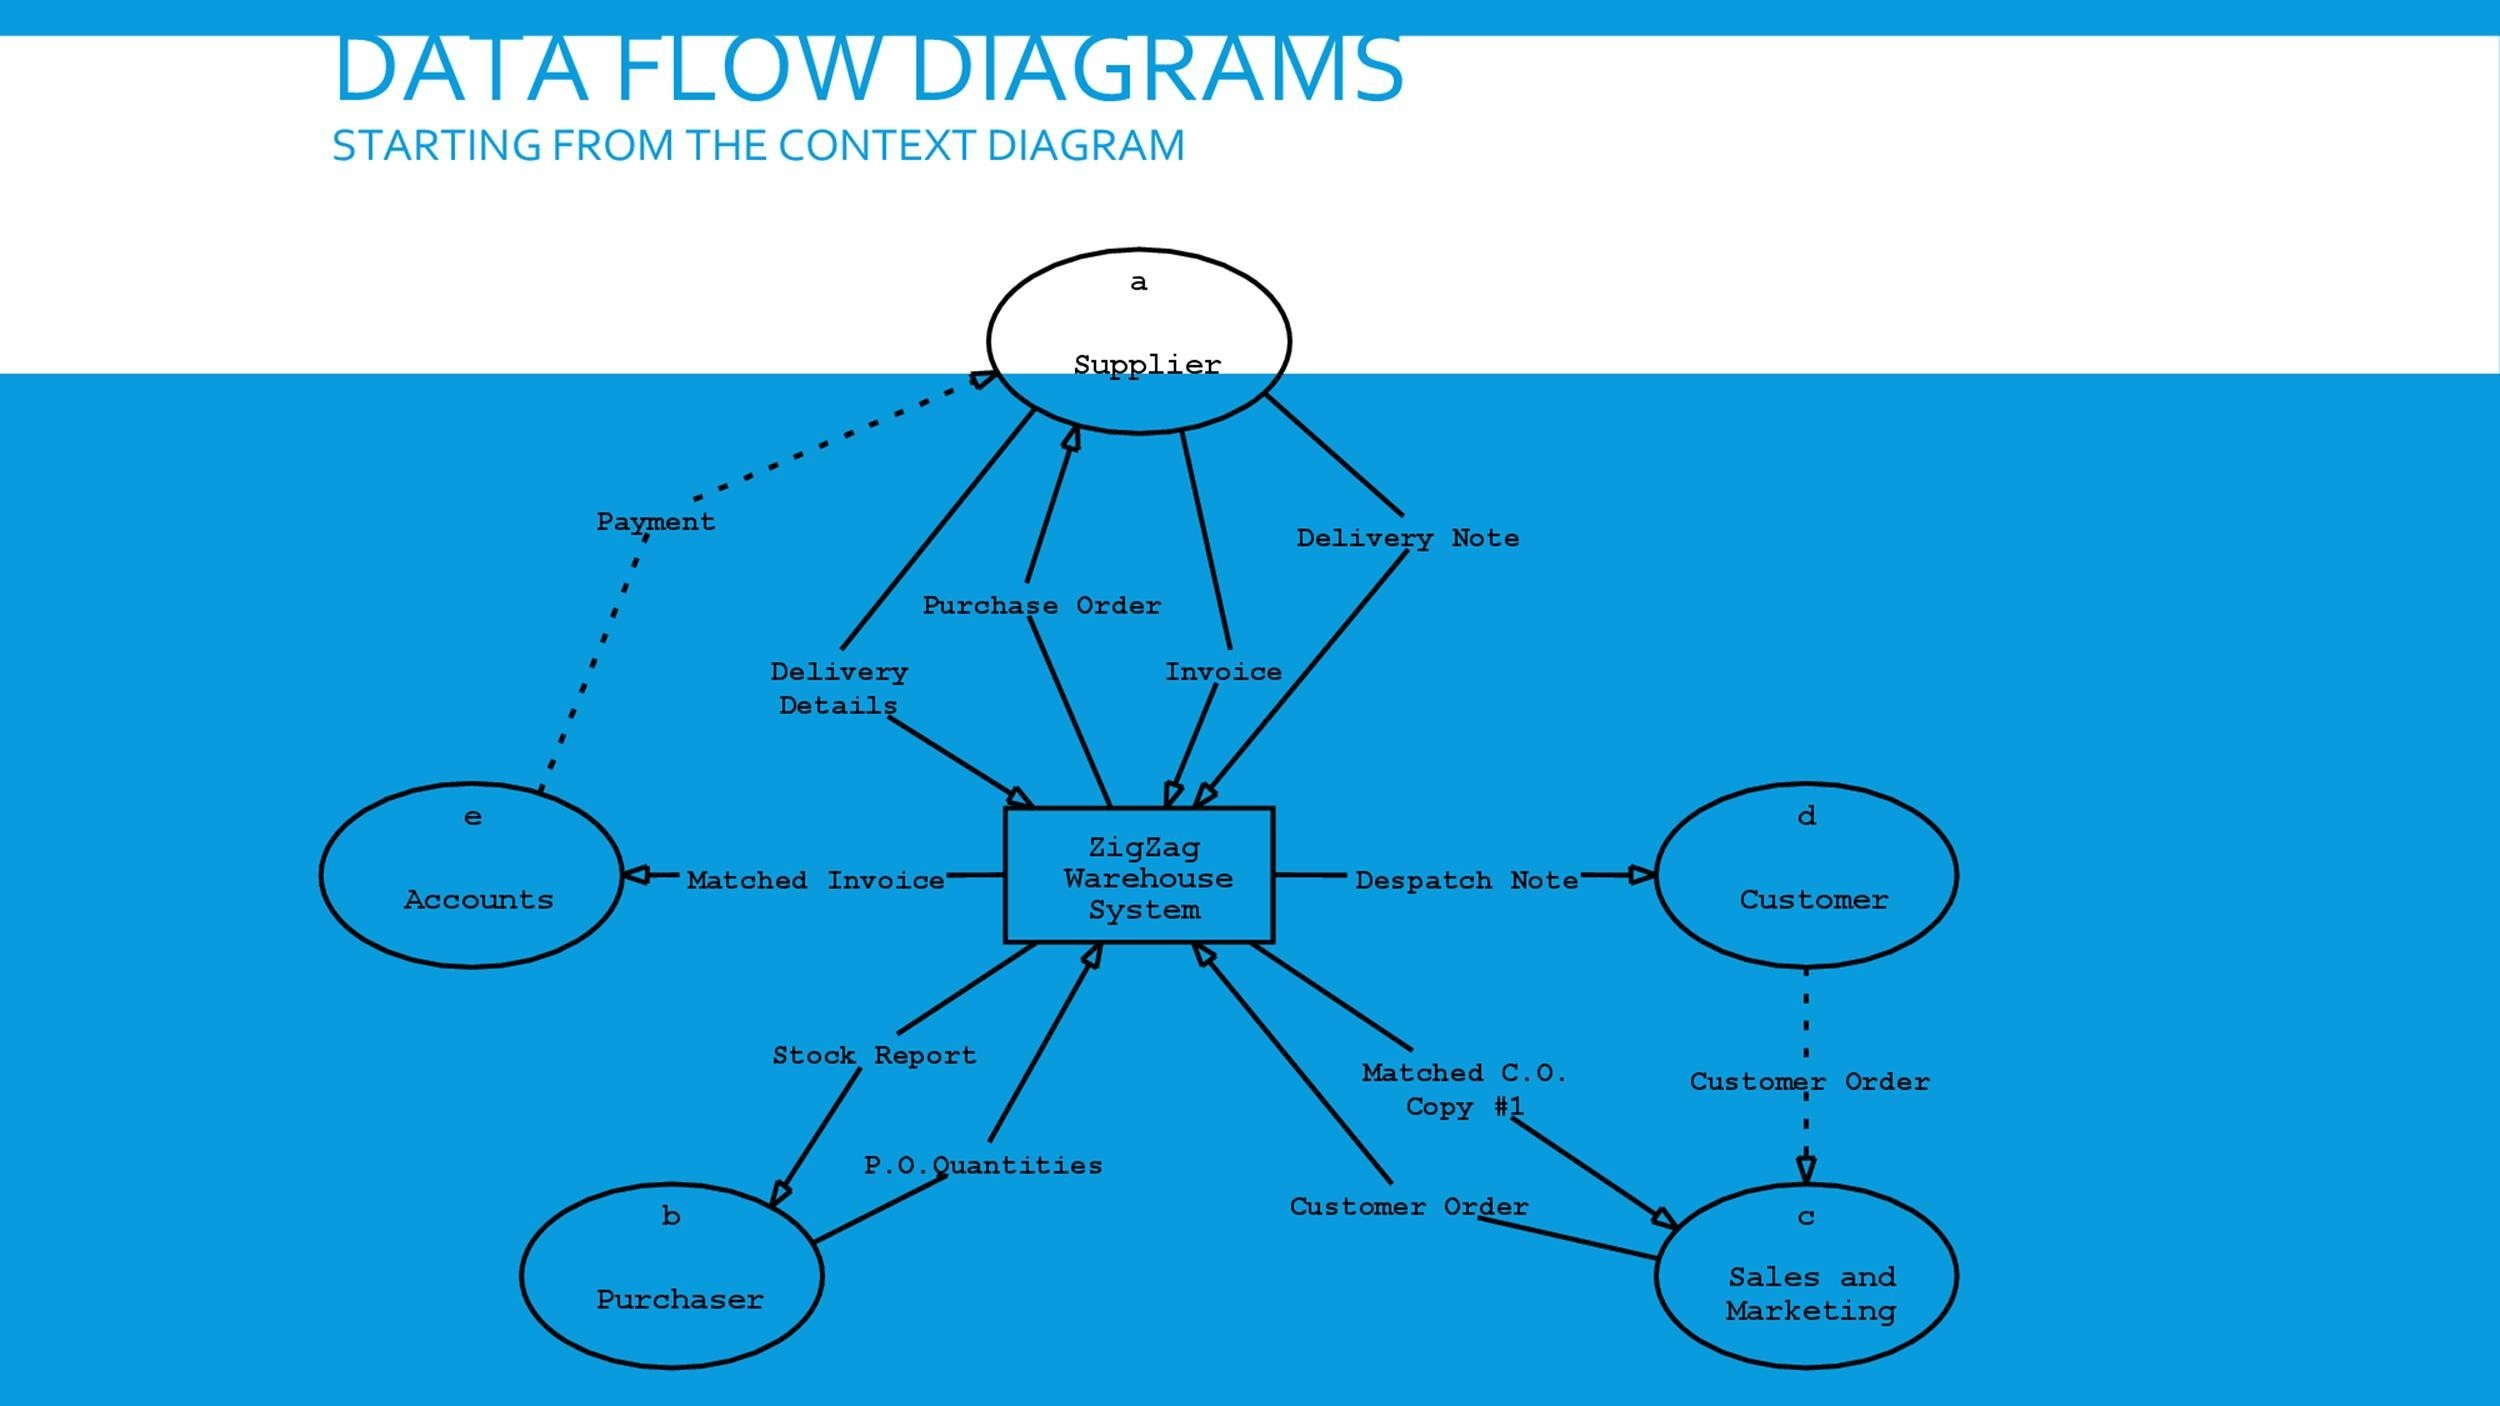 40 Fantastic Flow Chart Templates Word, Excel, Power Point - accounting flowchart template